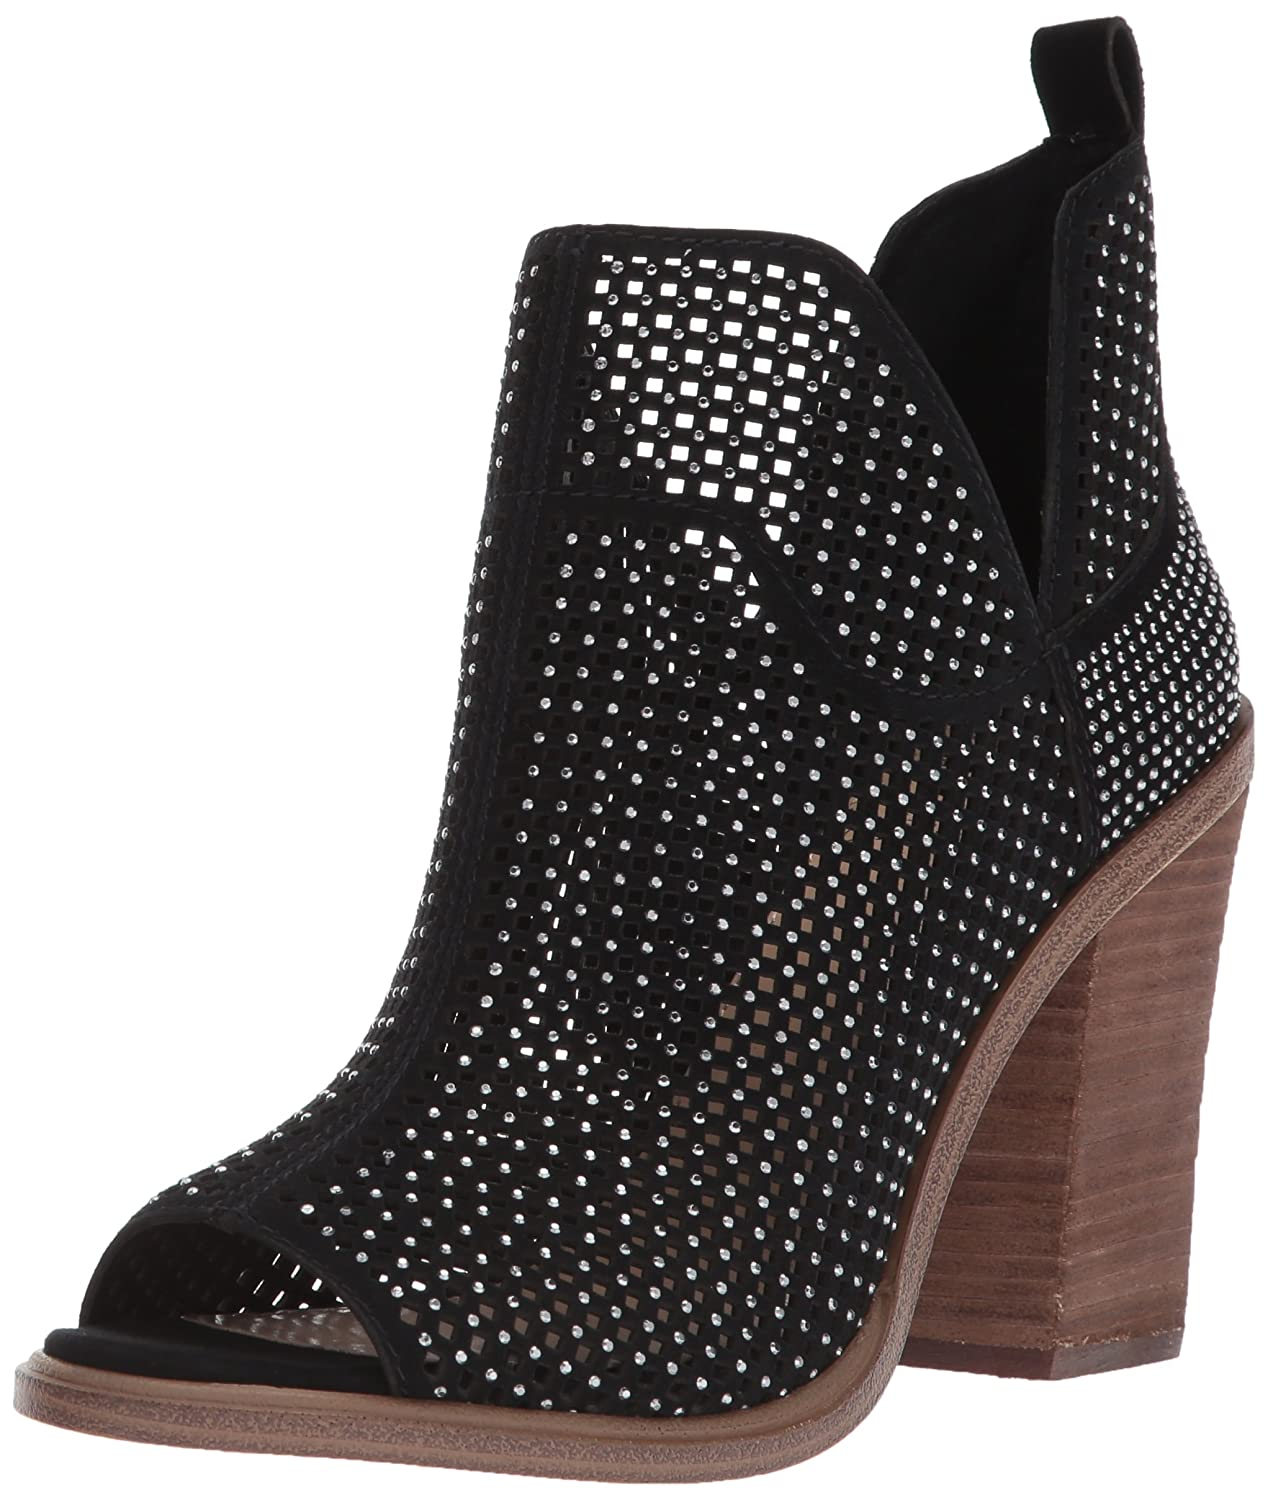 Vince Camuto Women's Kiminni Ankle Boot B07693KVLW 5.5 B(M) US|Black